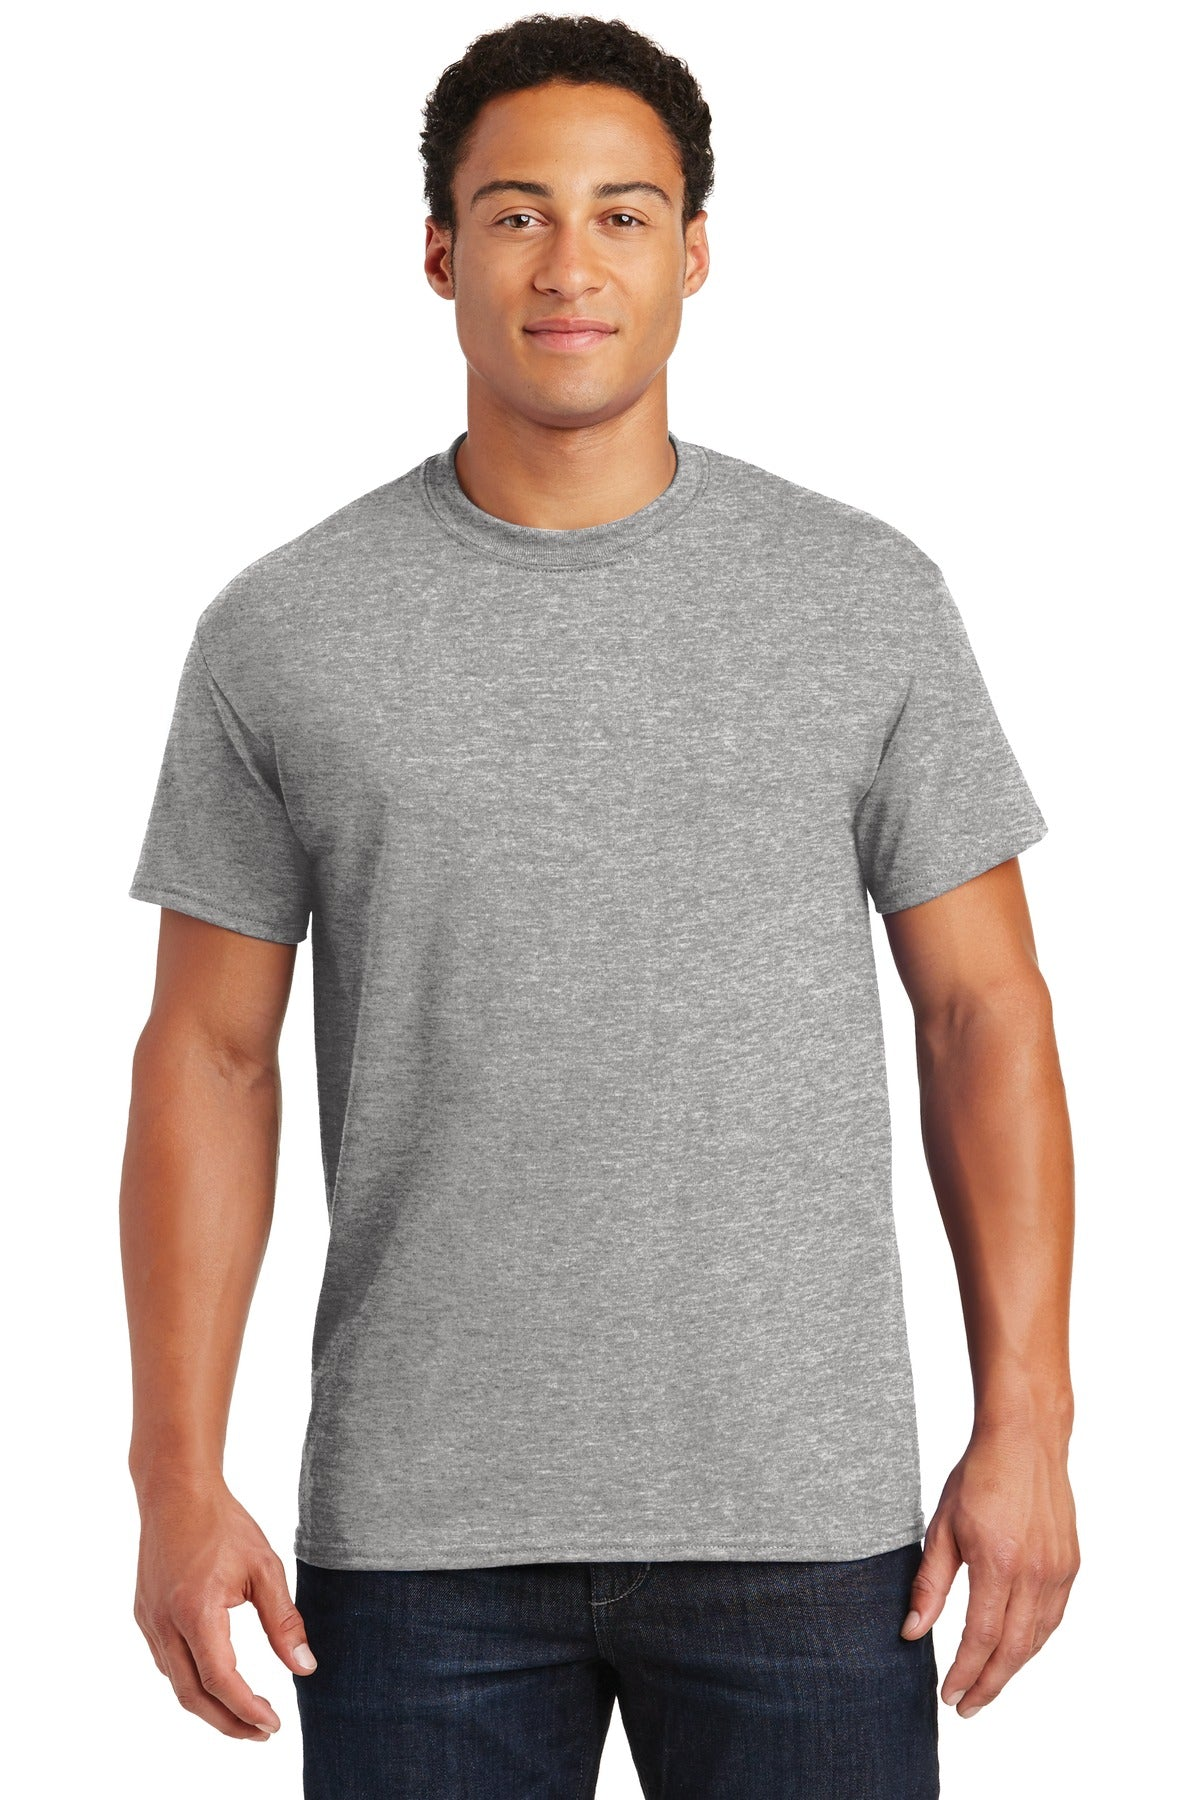 Sport Grey Gildan DryBlend 50 Cotton/50 Poly T-Shirt.